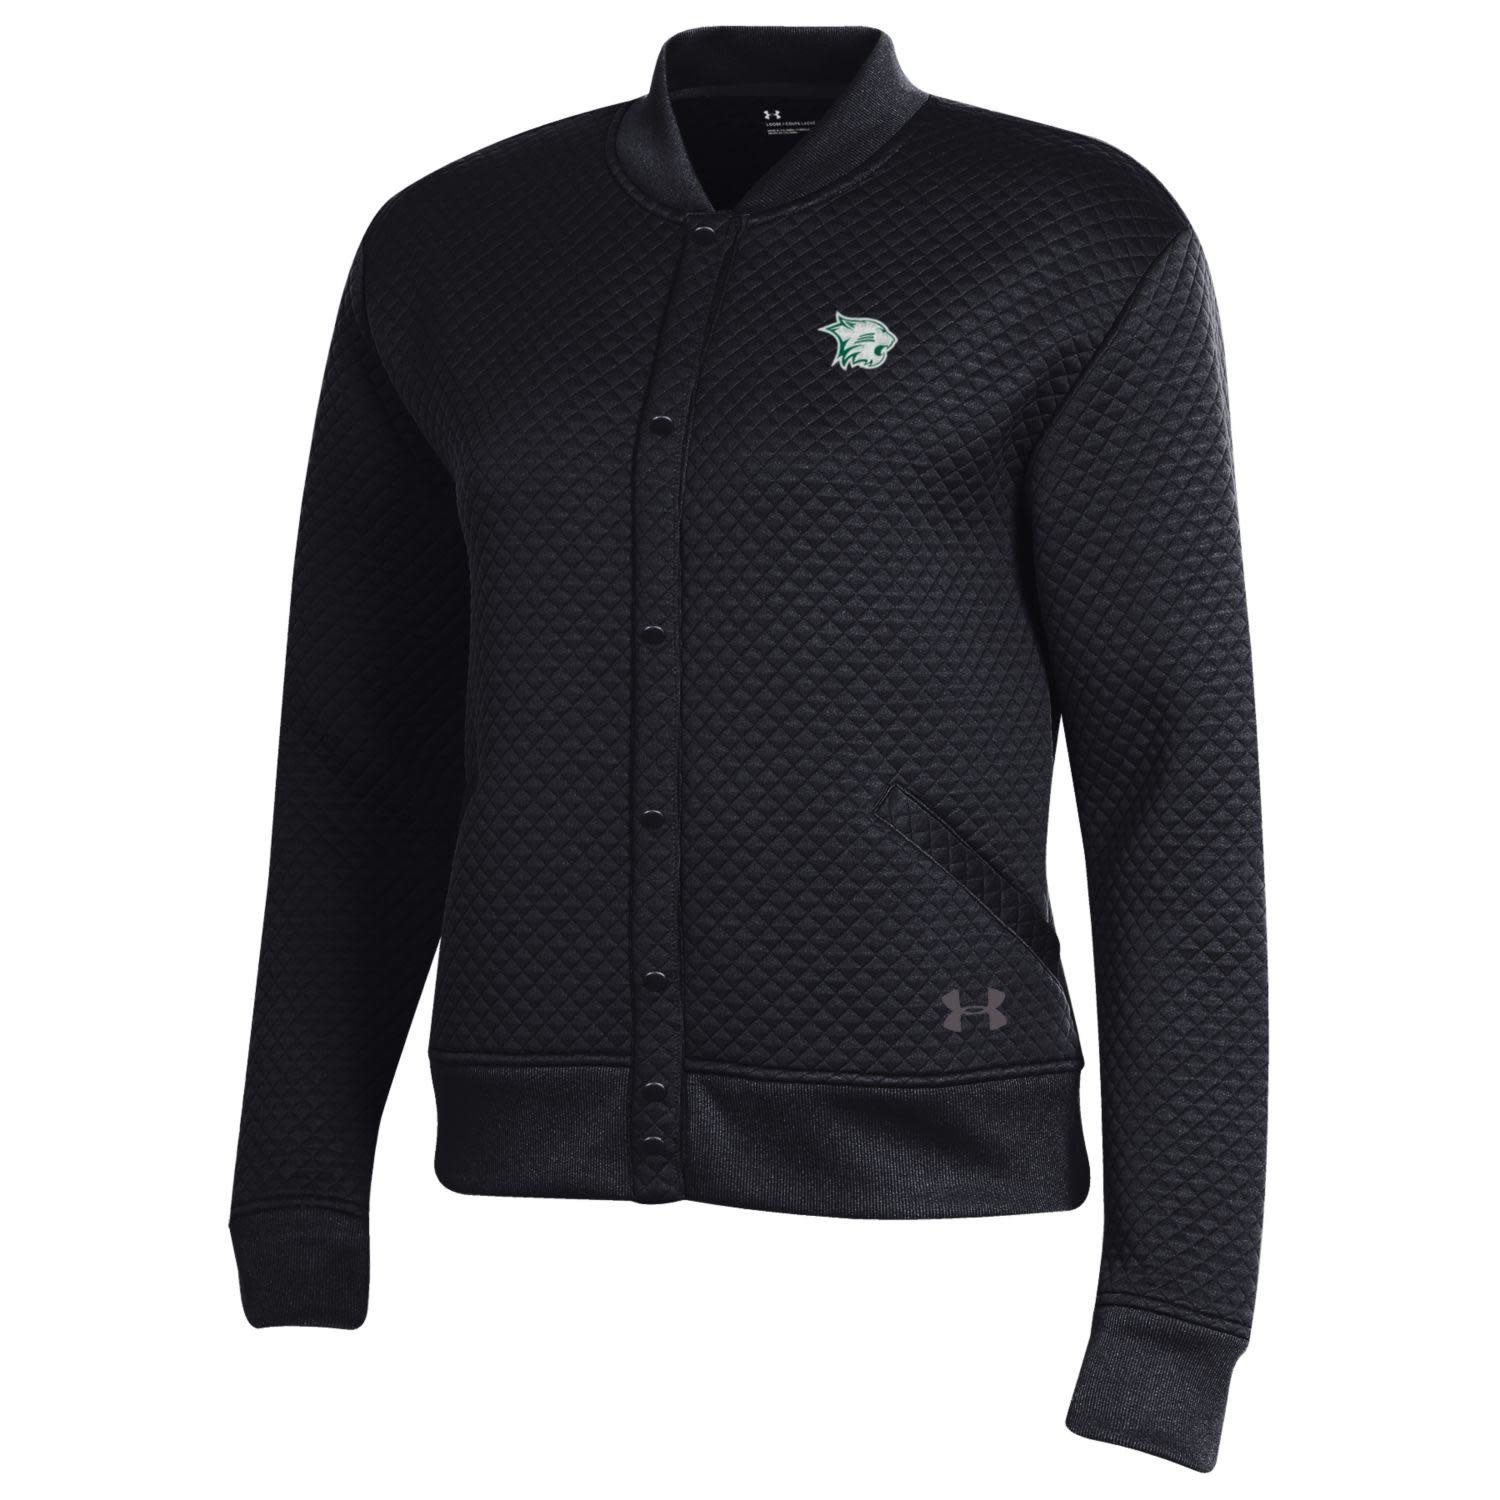 Under Armour Jacket: UA Women's Bomber Black